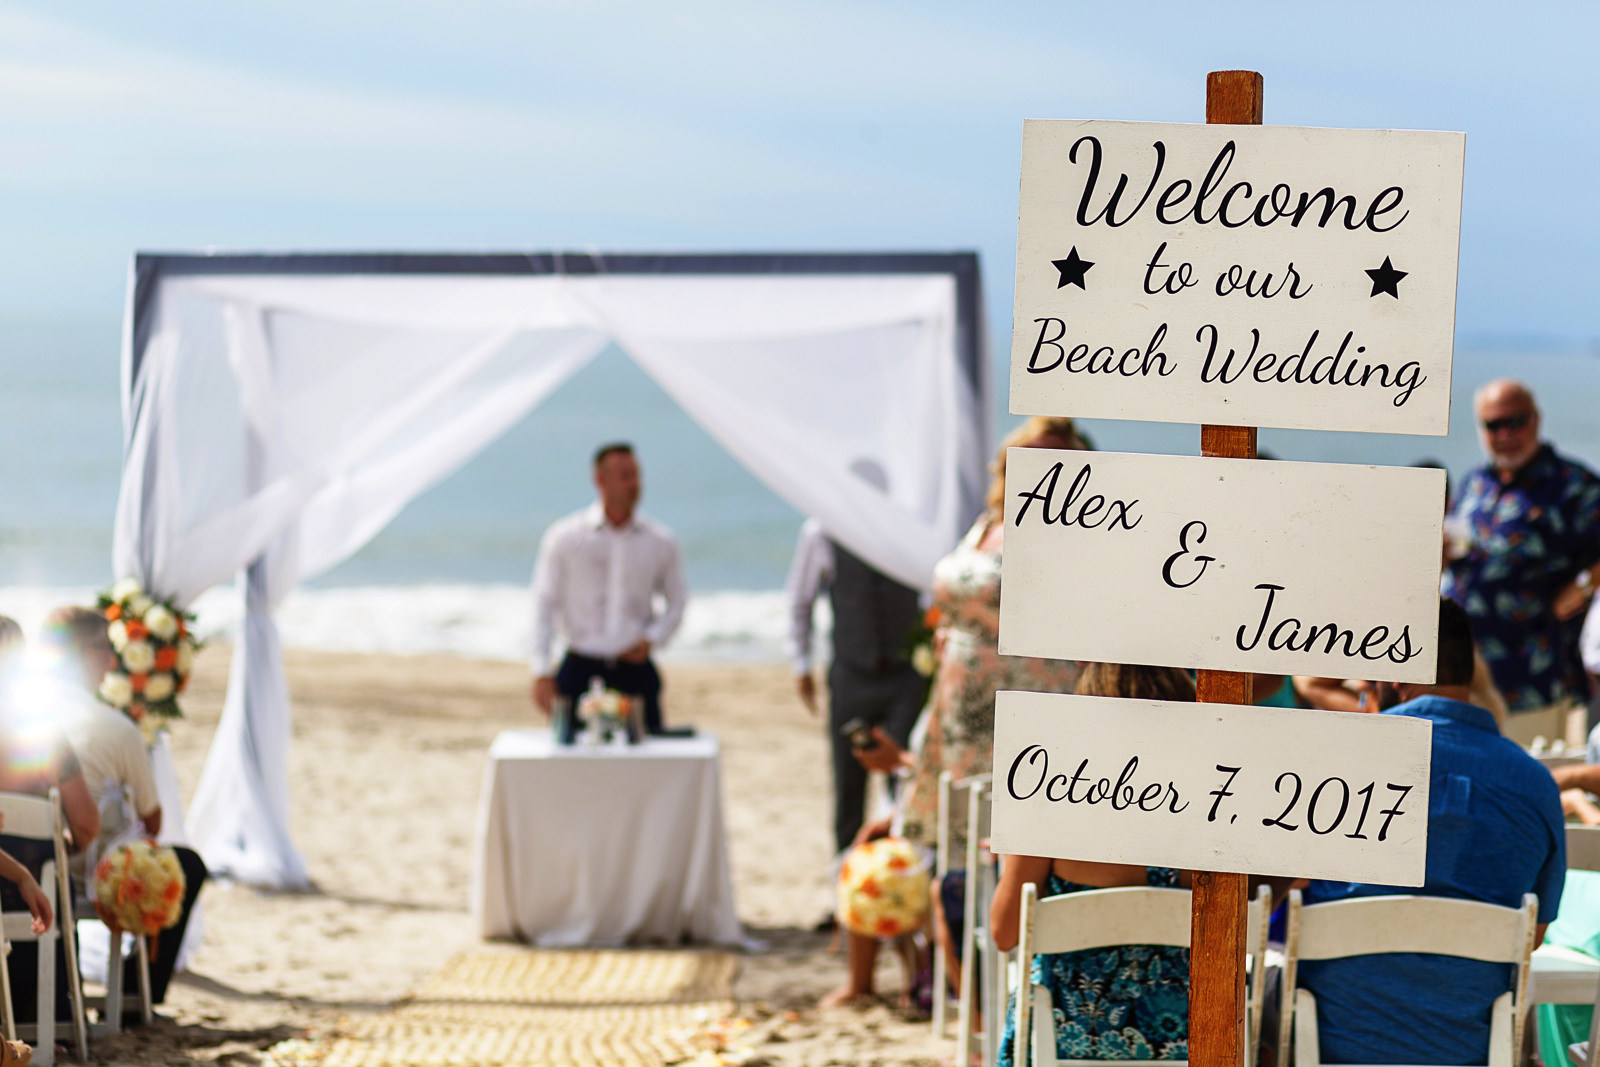 Beach setup of wedding ceremony about to beggin